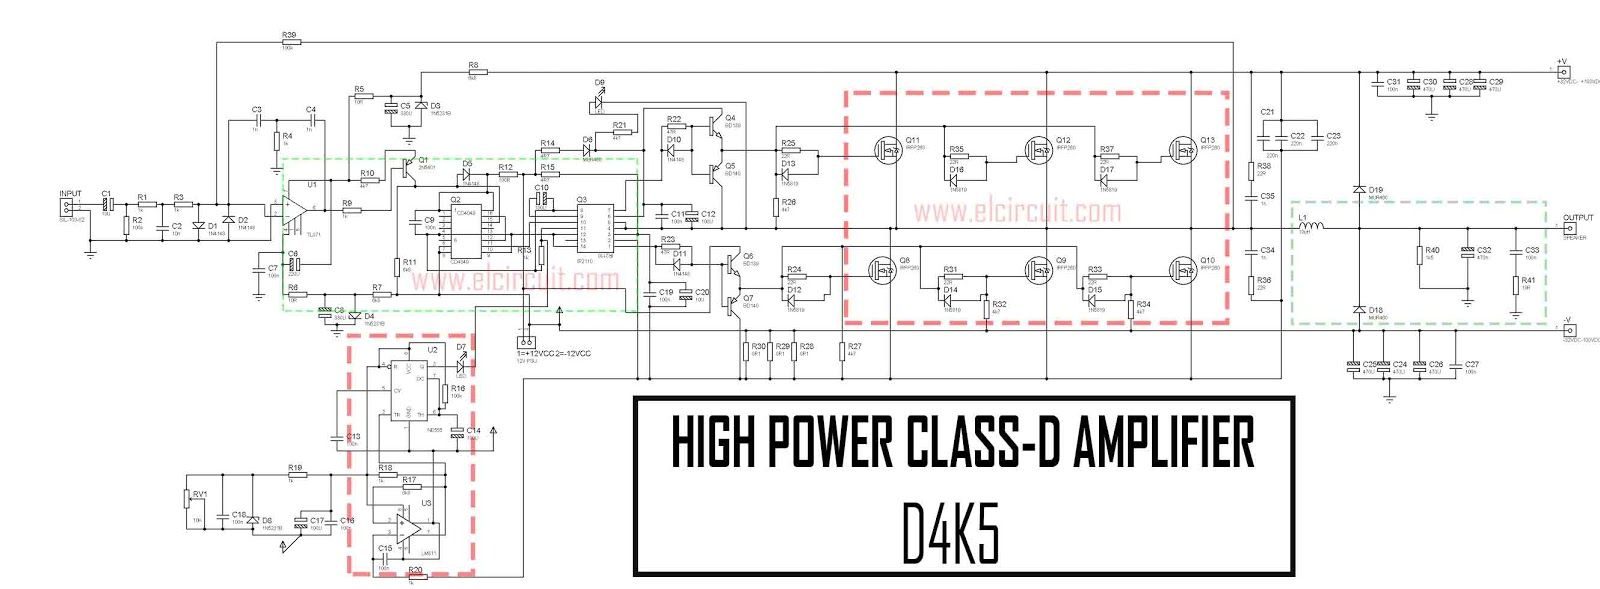 High Power Class-D Amplifier D4K5 | Lugares para visitar in